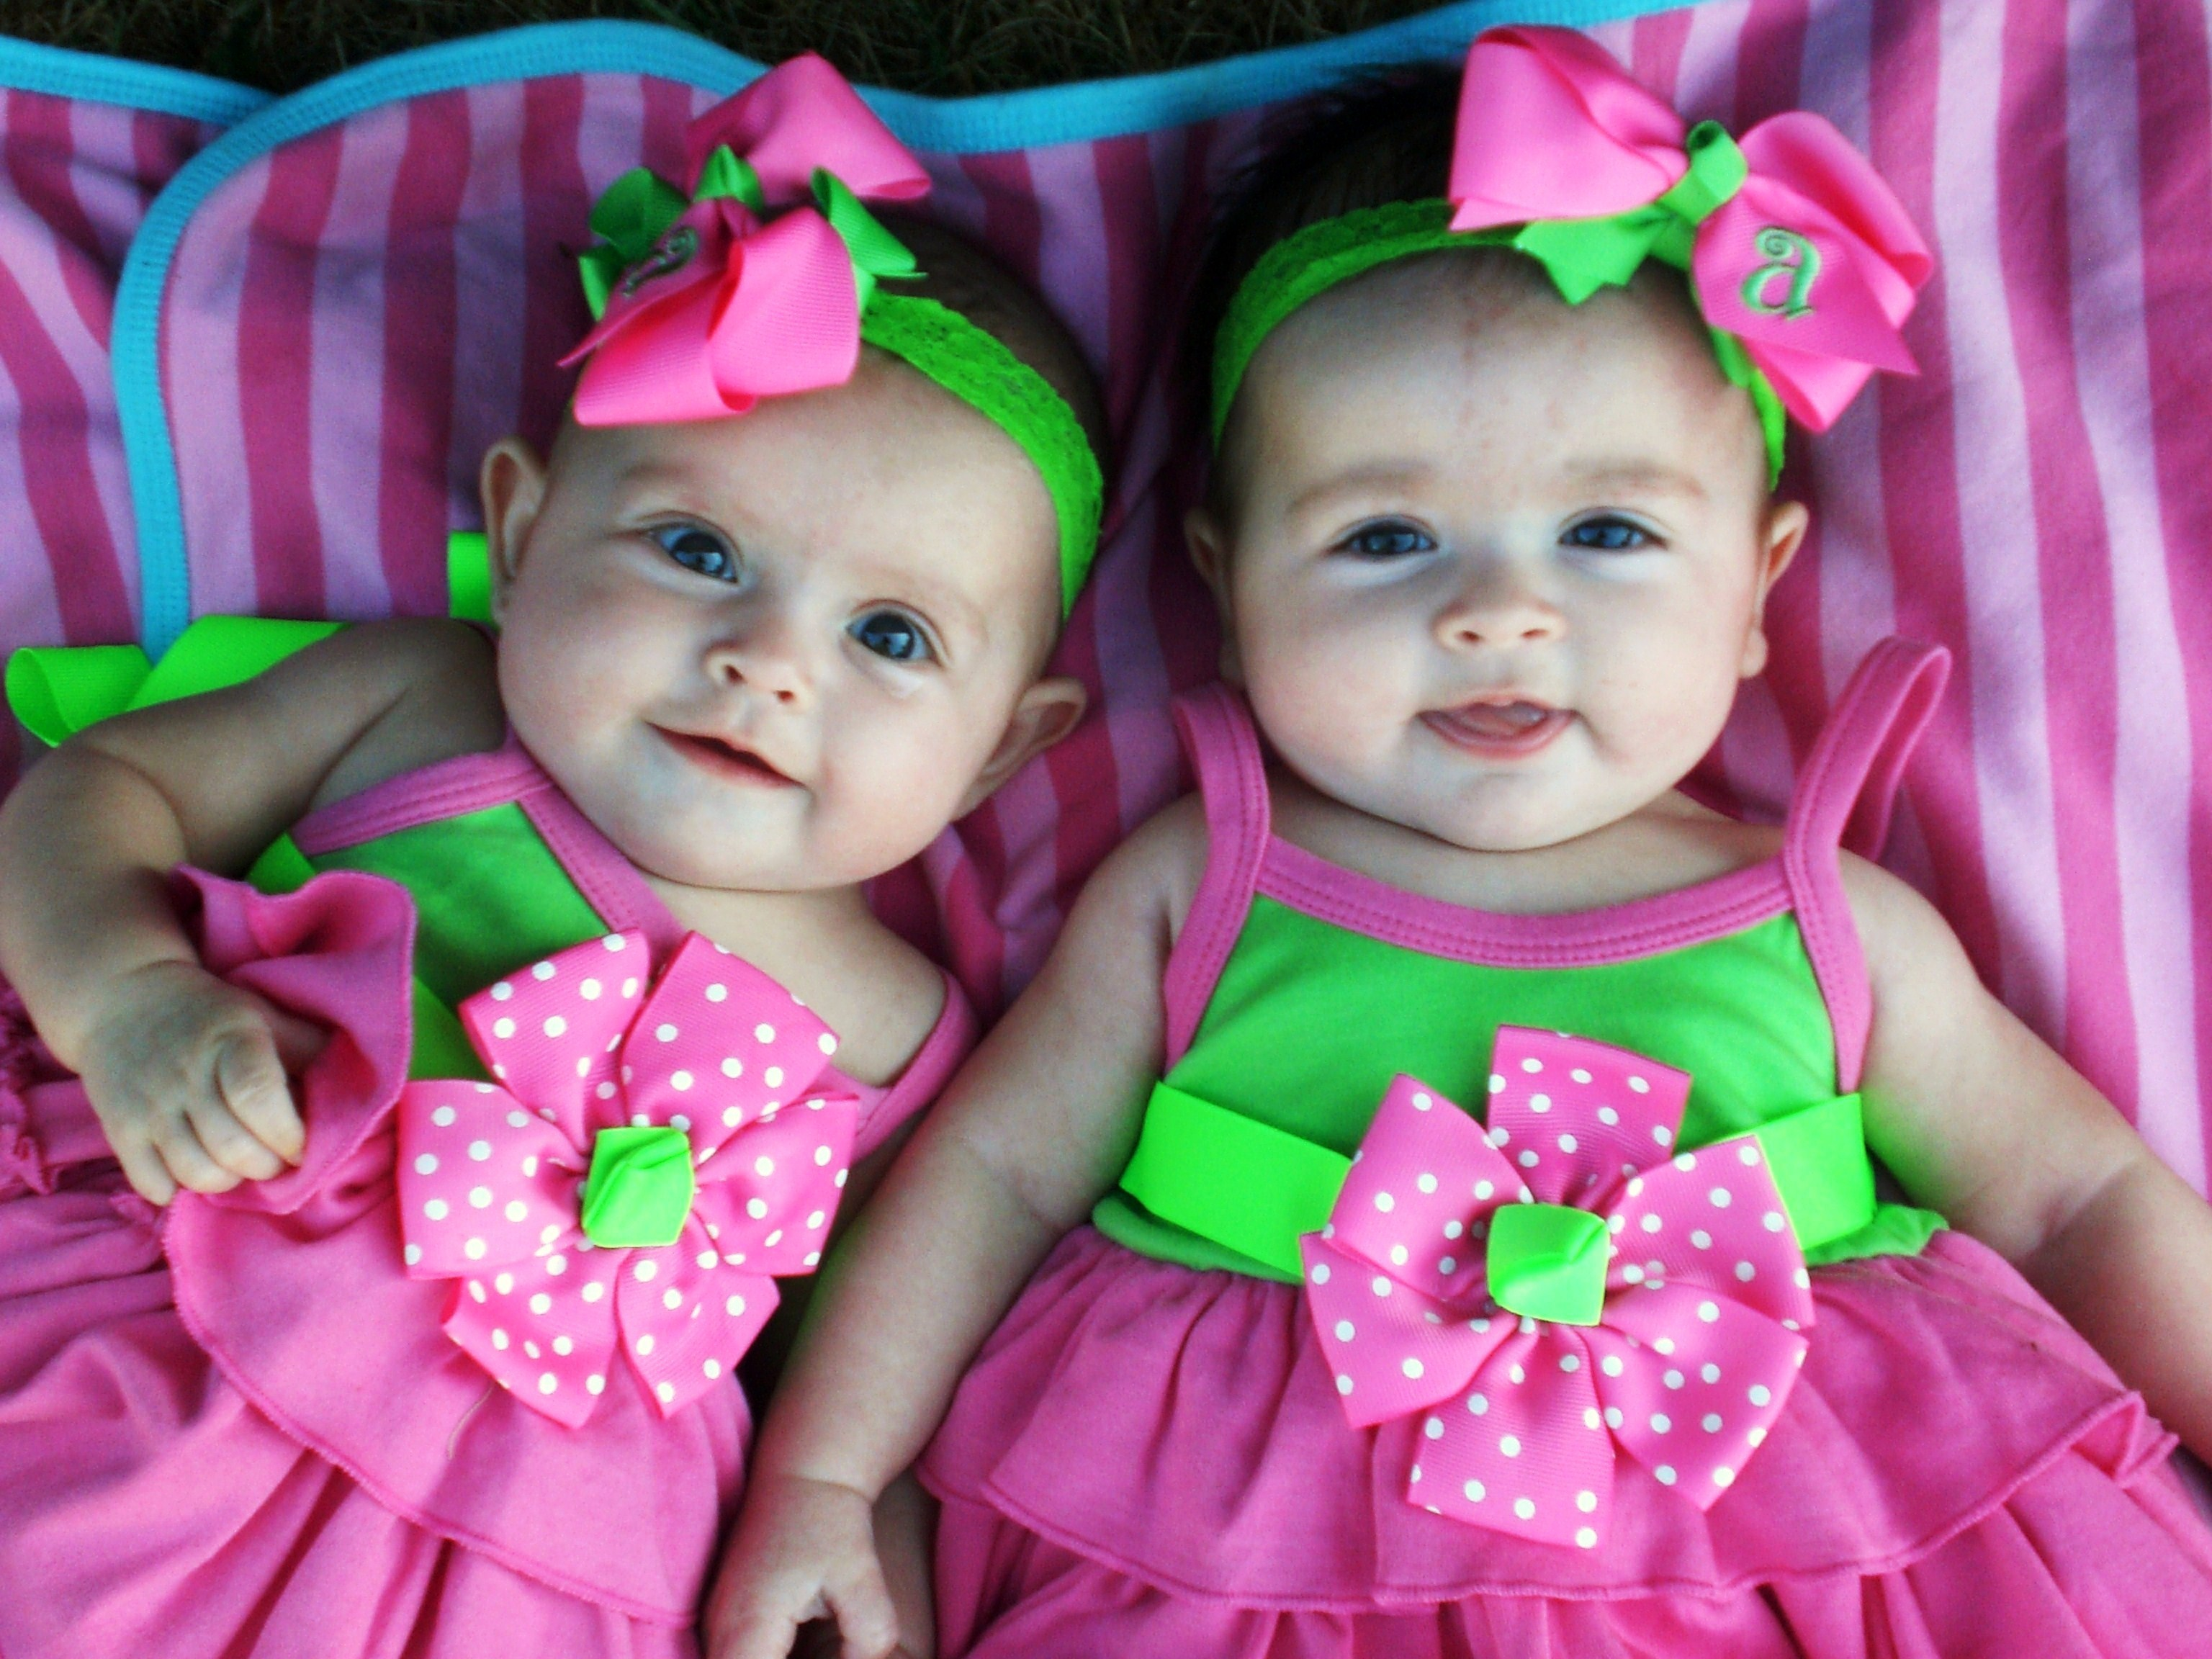 Girls Are 4 Months Old. Cute Dresses, Sibling Jealousy Continues, And Wallpaper